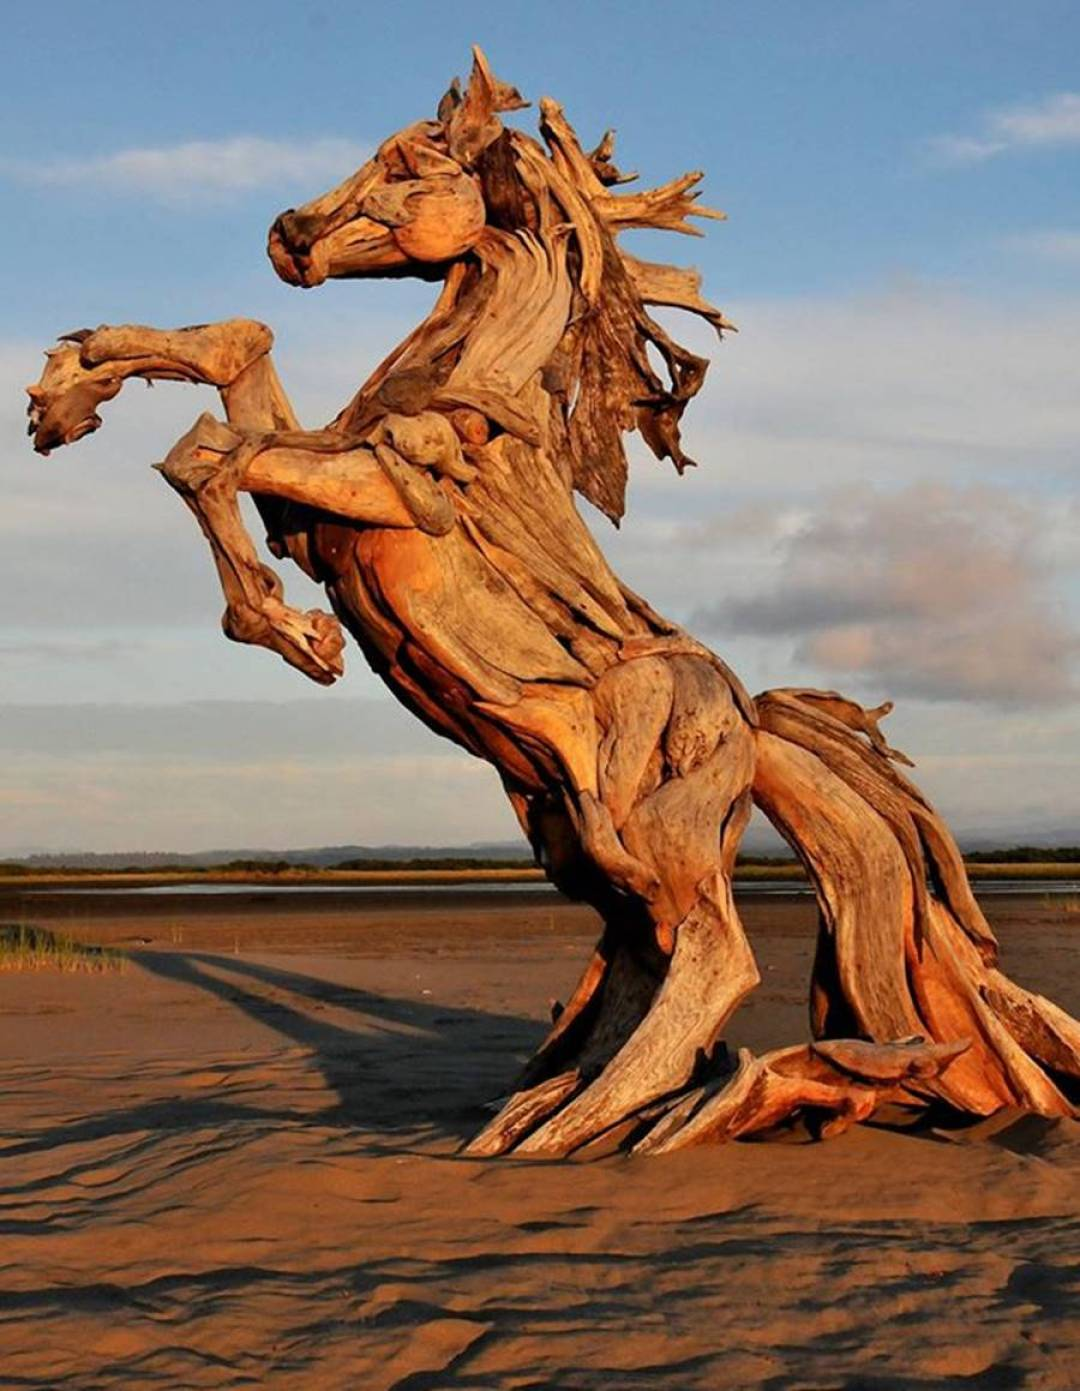 Wood Artist Creates Stunning Animal Sculptures Using Only Salvaged Wood 6